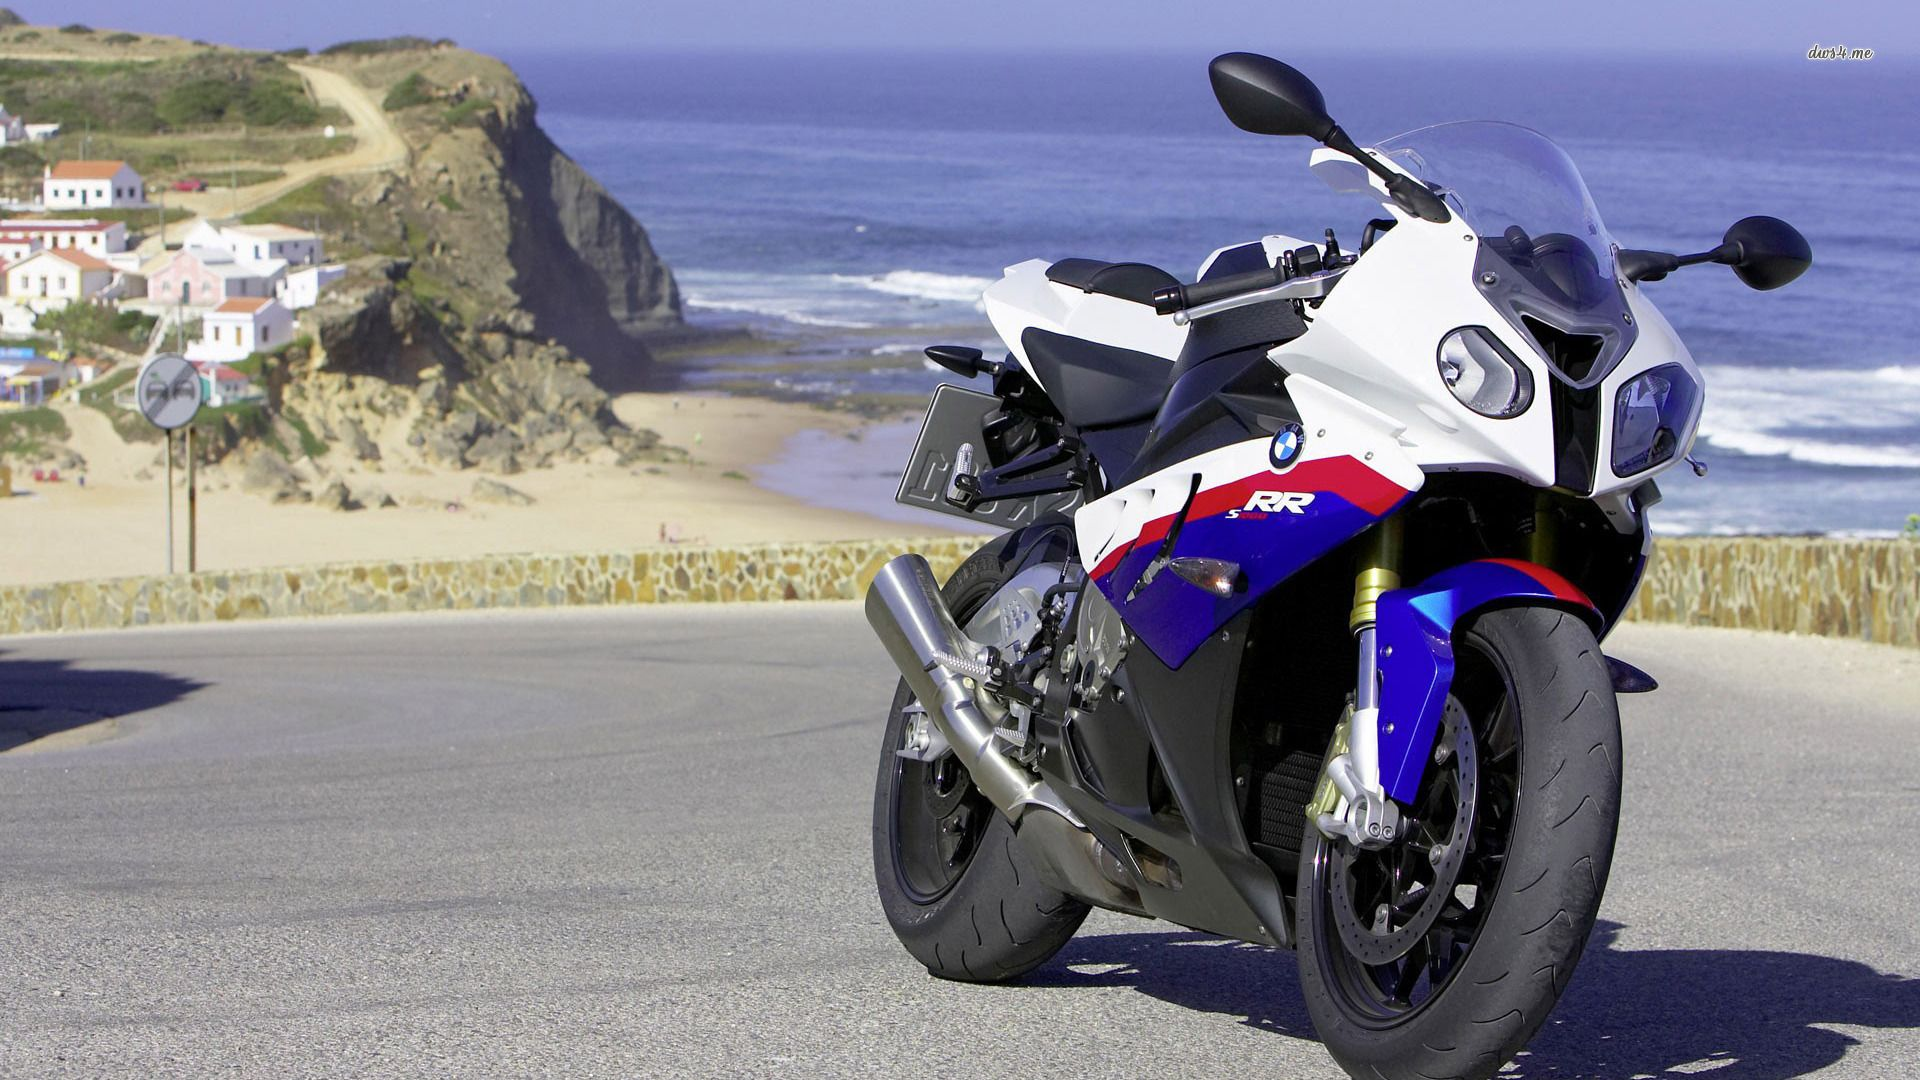 29045 Bmw S1000rr 1920x1080 Motorcycle Wallpaper